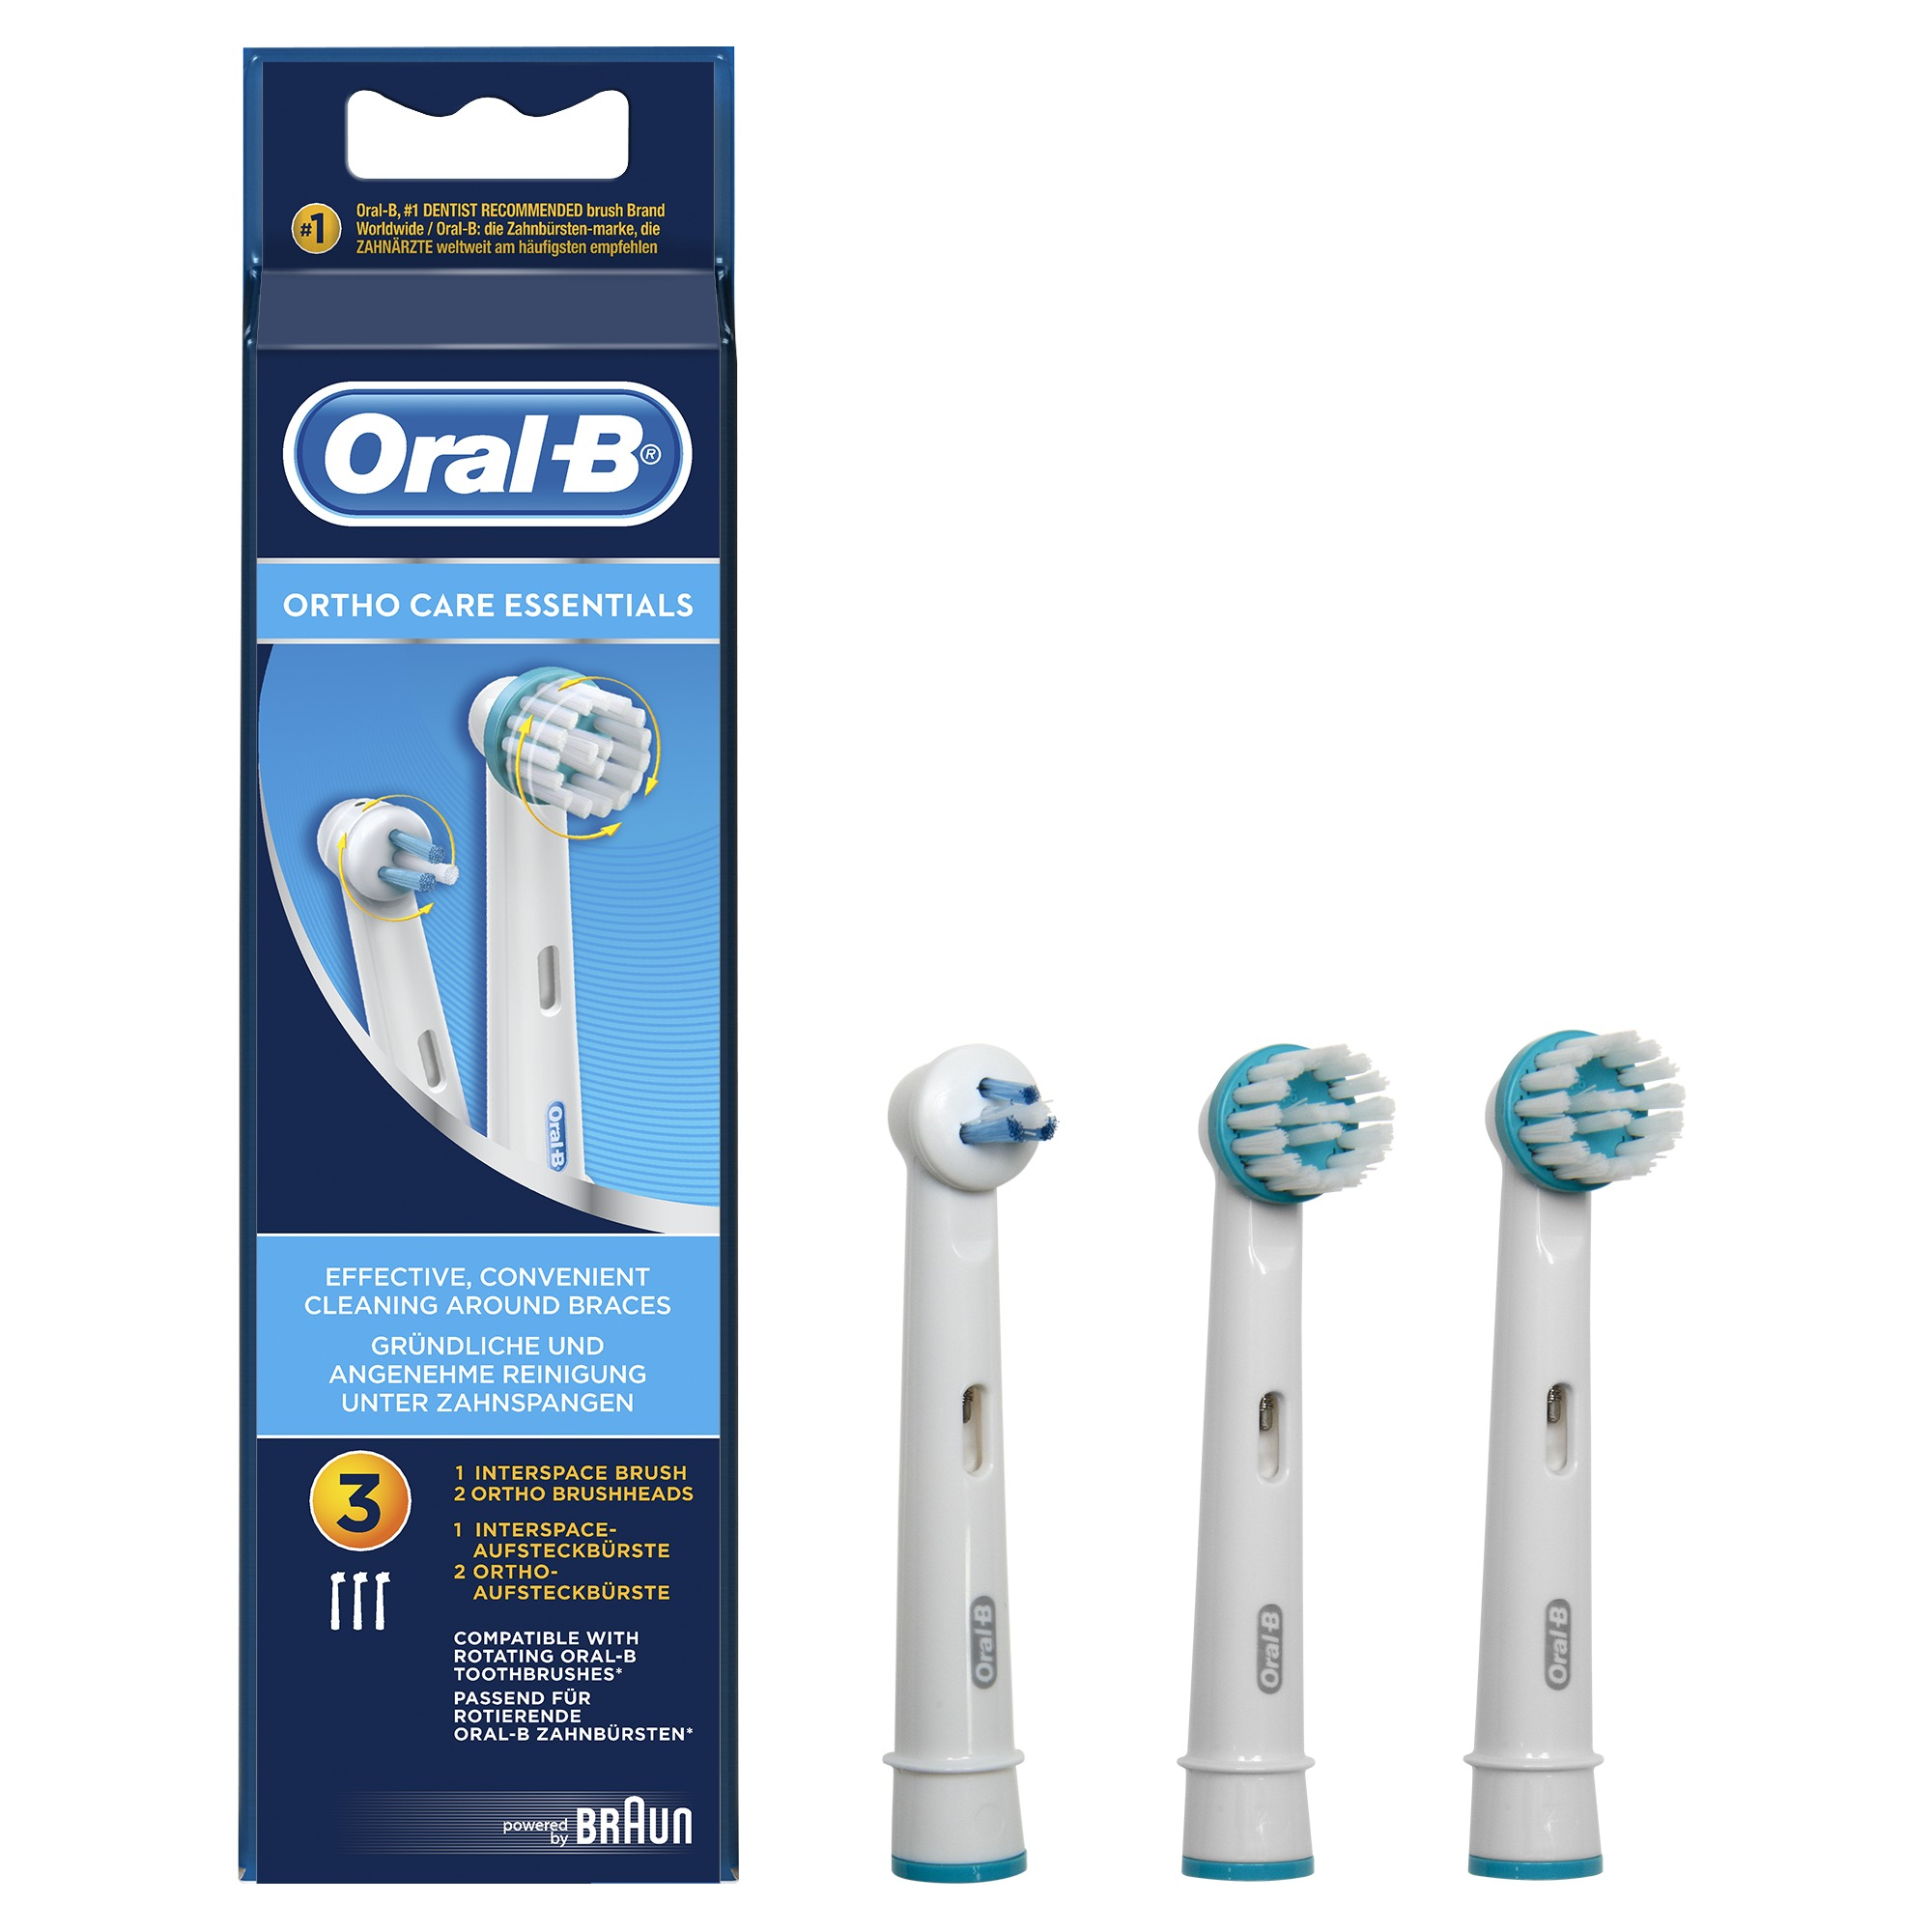 Korting Oral B Ortho Care Essentials EB Ortho Kit mondverzorging accessoire